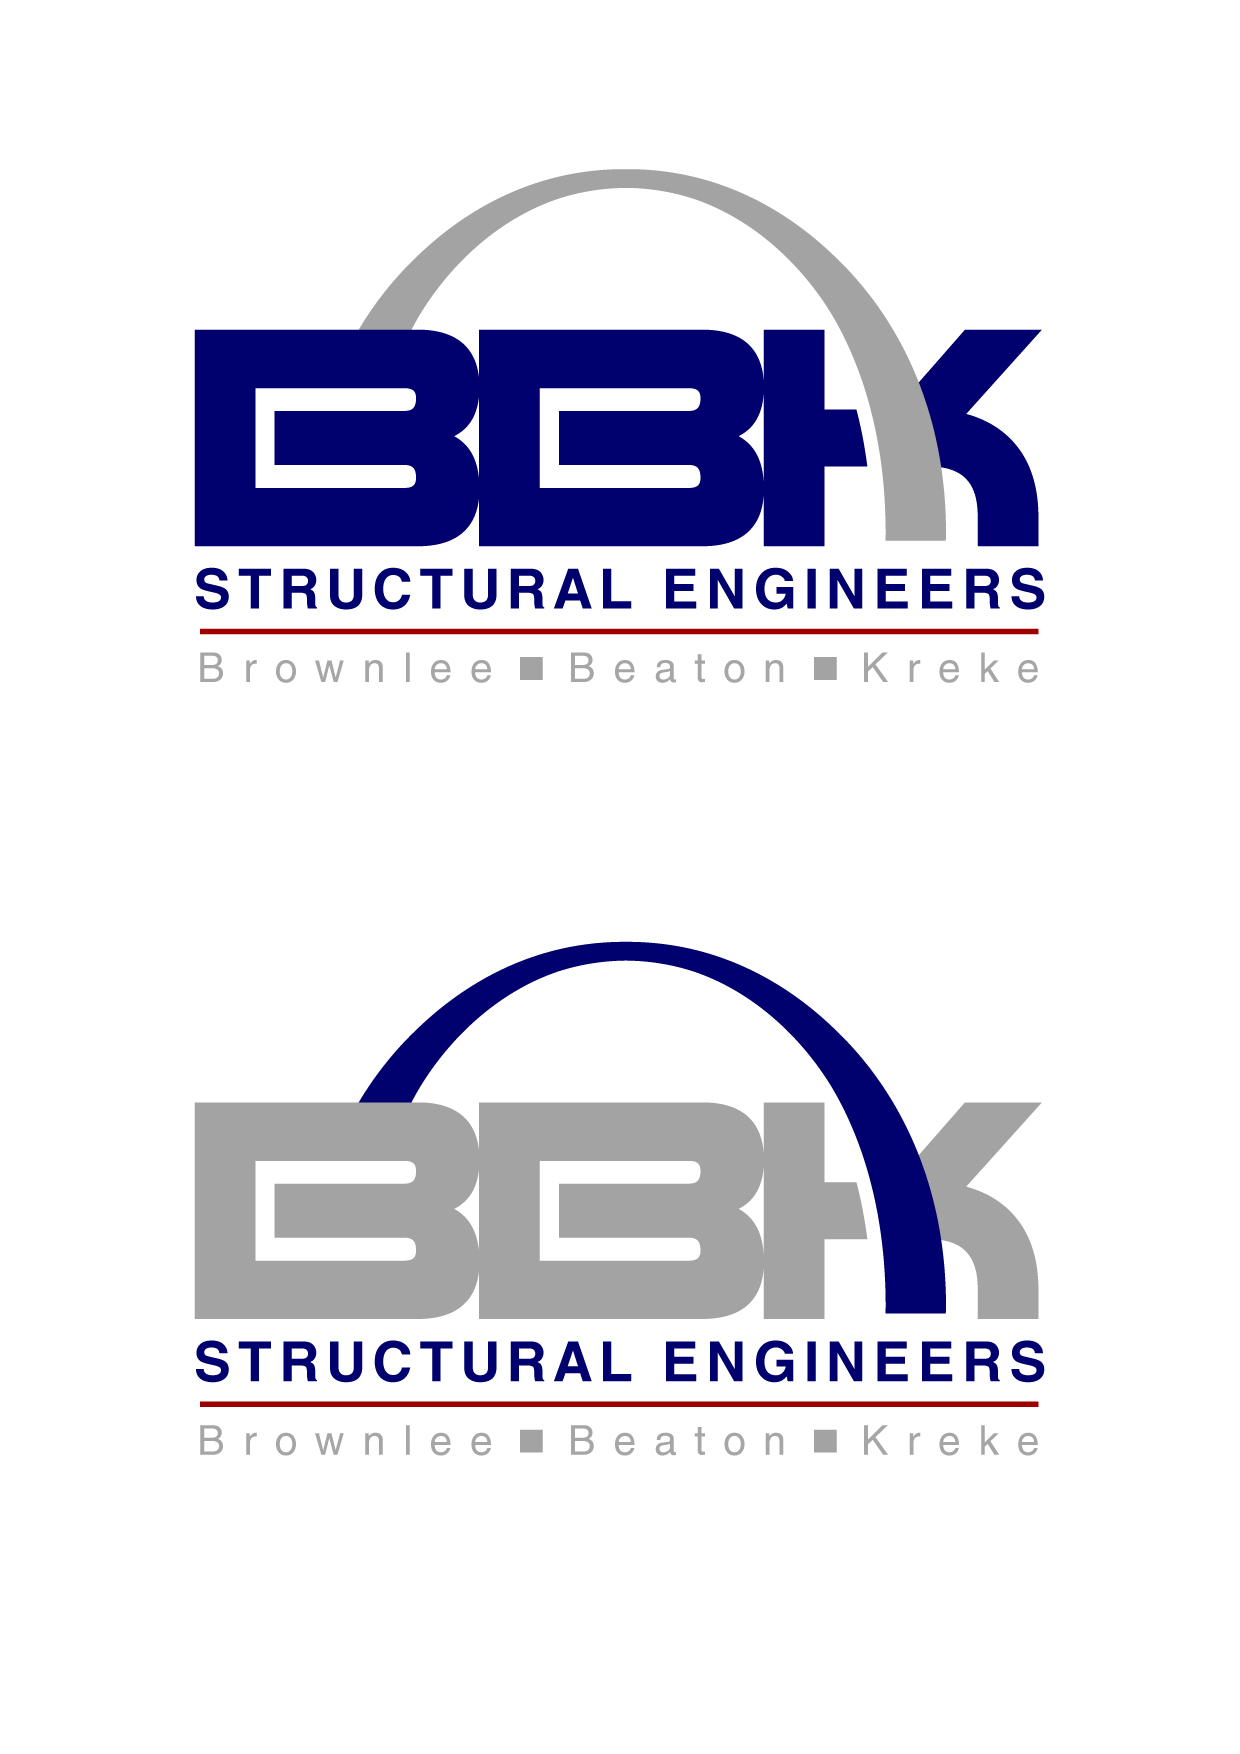 Logo Design by Wilfredo Mendoza - Entry No. 156 in the Logo Design Contest Logo Design Needed for Exciting New Company BBK Consulting Engineers.